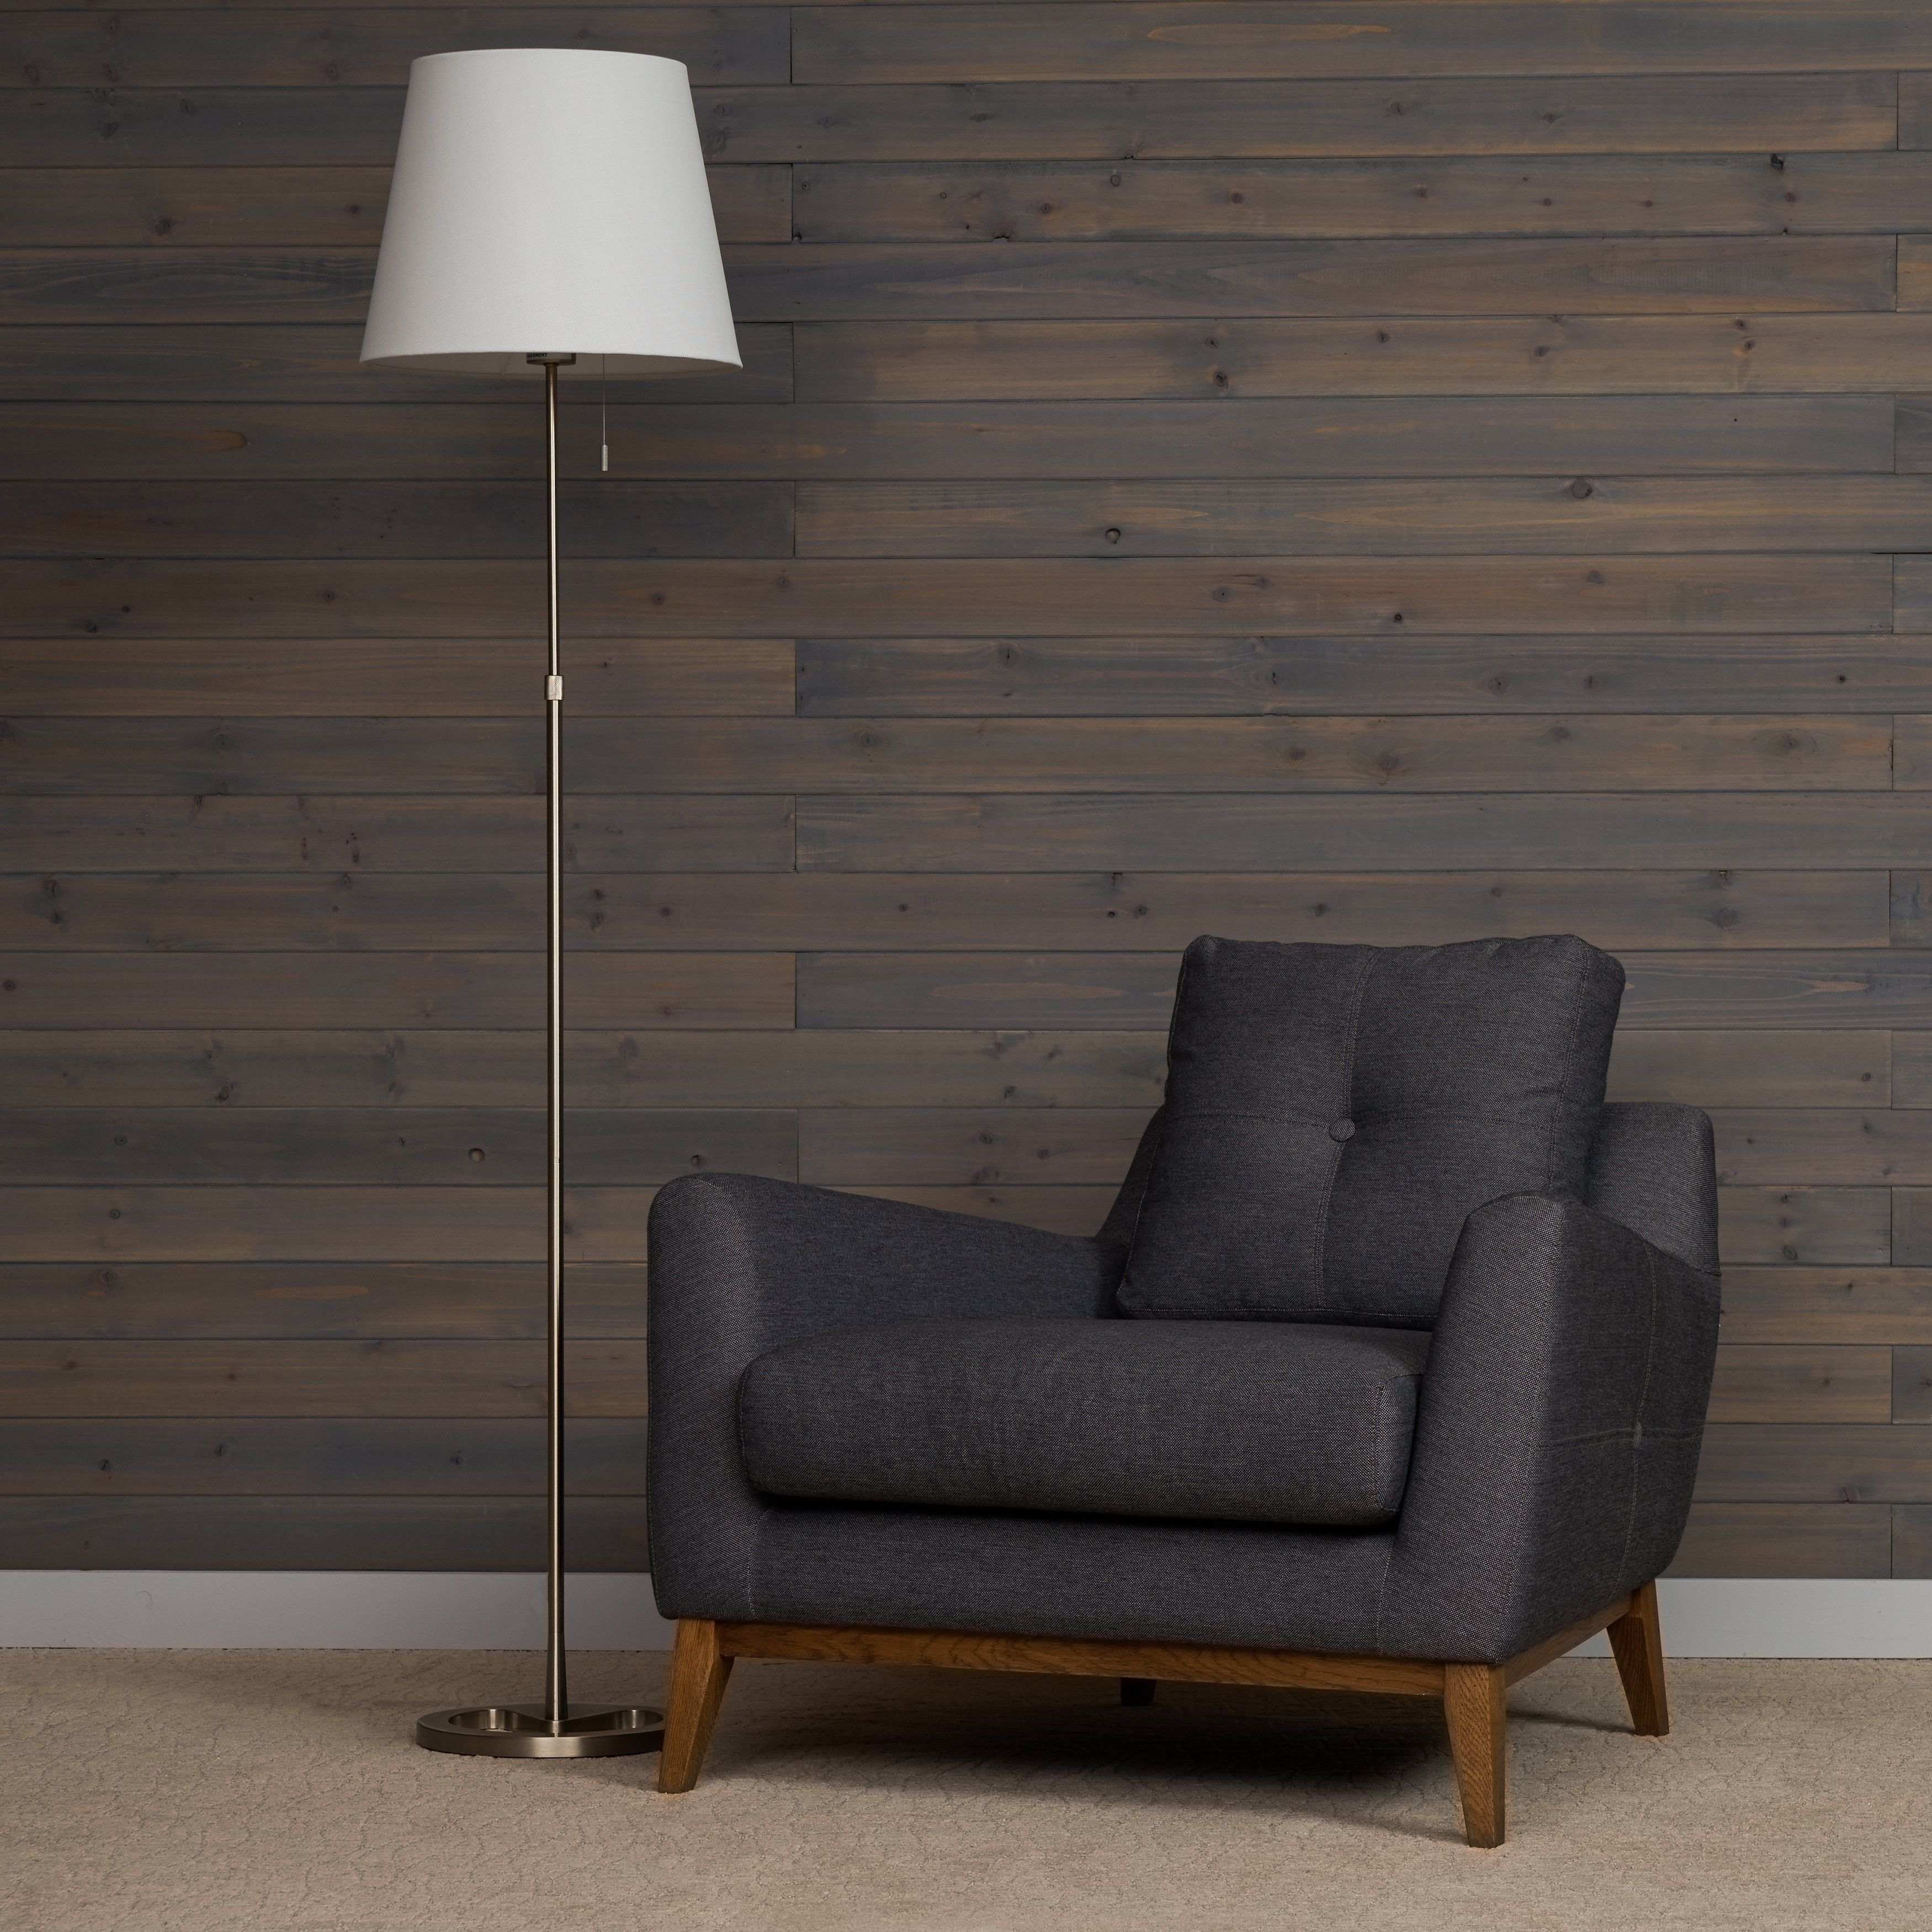 Hundley Mid-Century Modern Arm Chair in Stella Stone by RST Brands (Stella Stone), Brown